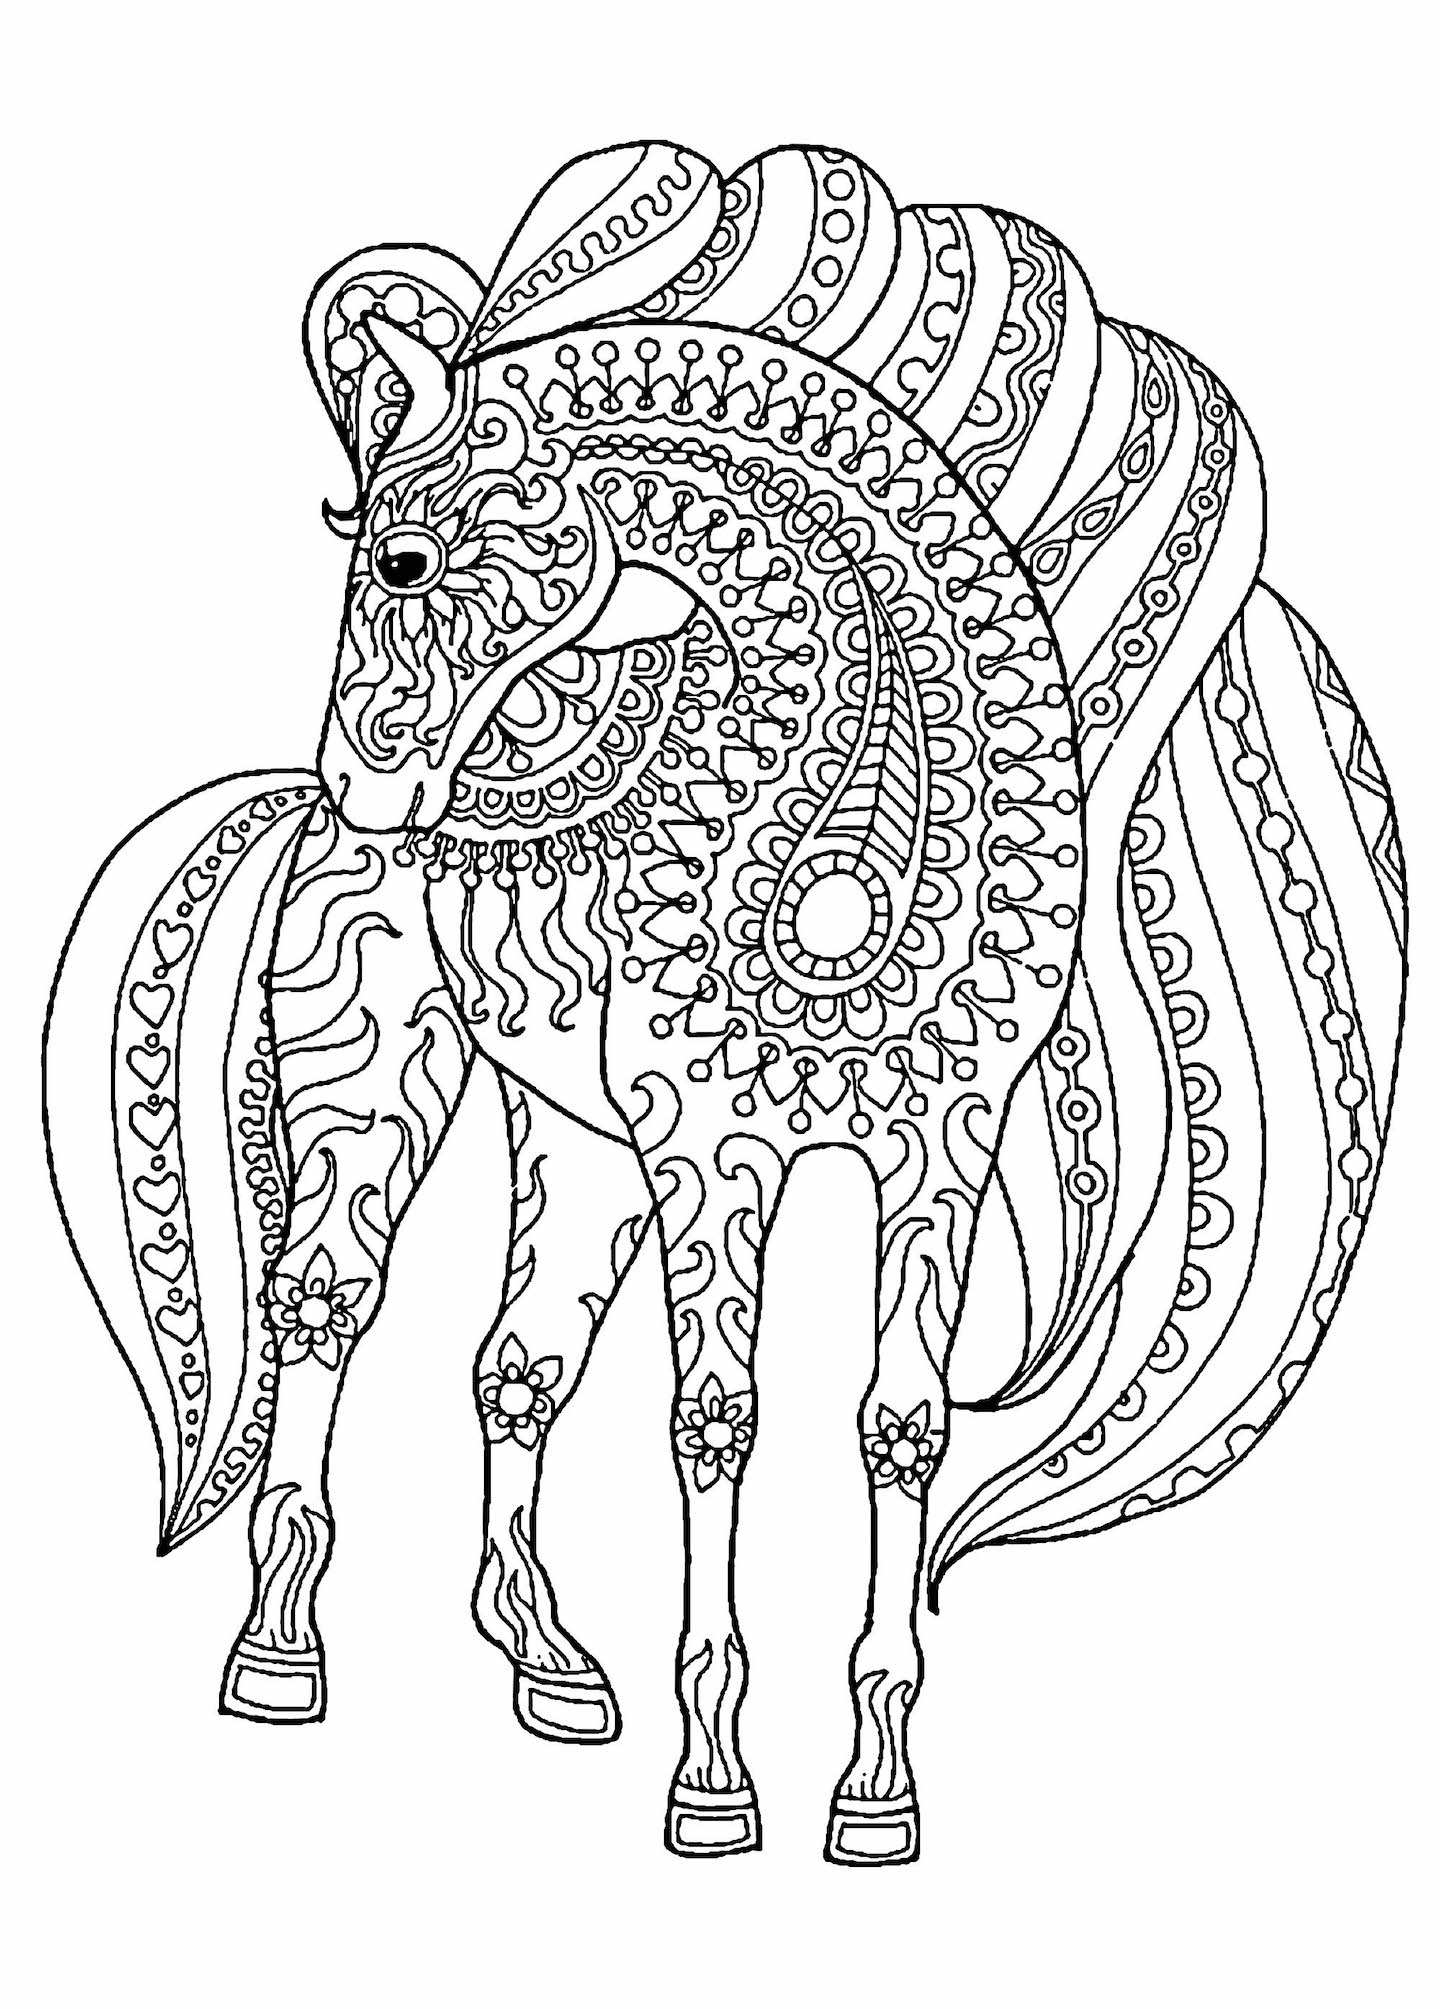 coloring page horse horse coloring pages 2019 best cool funny page coloring horse